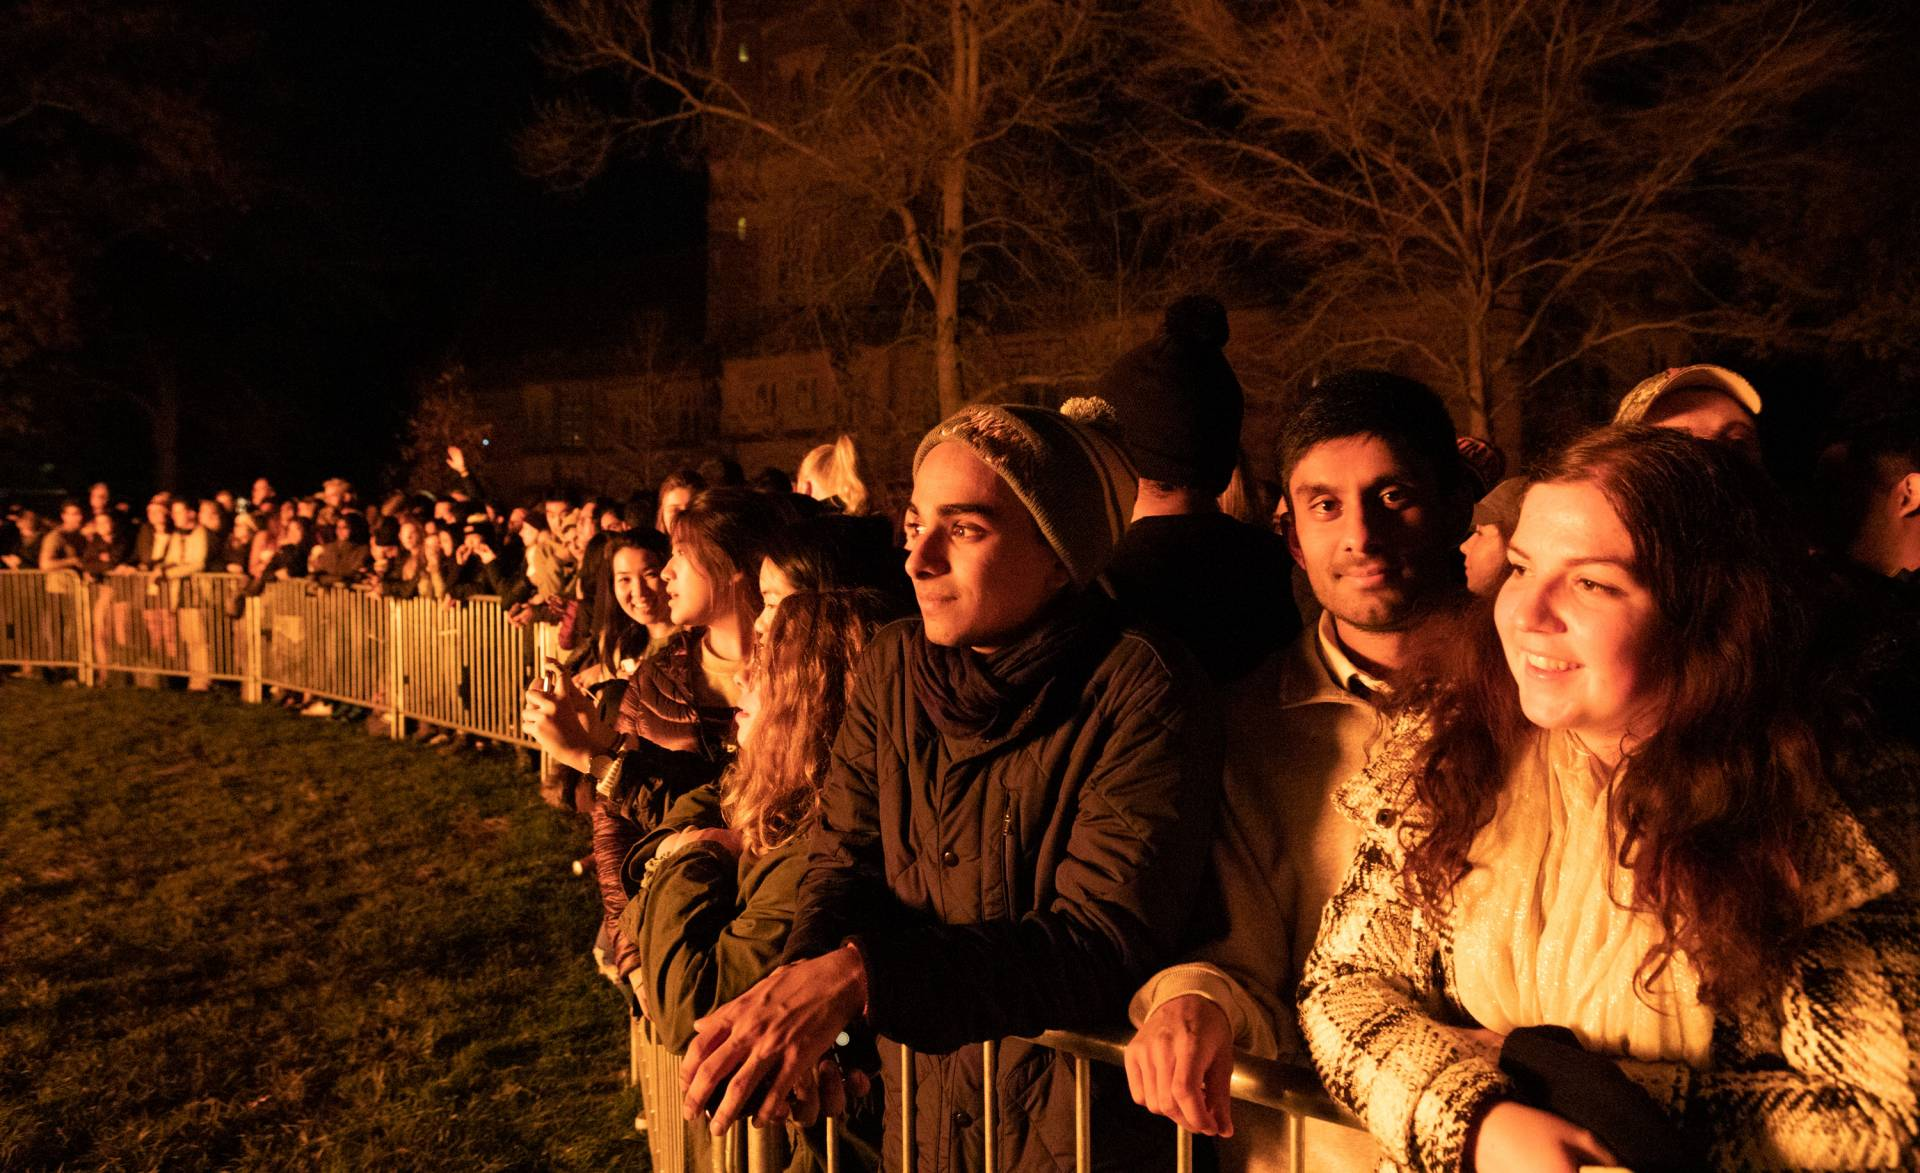 Students looking on at the bonfire